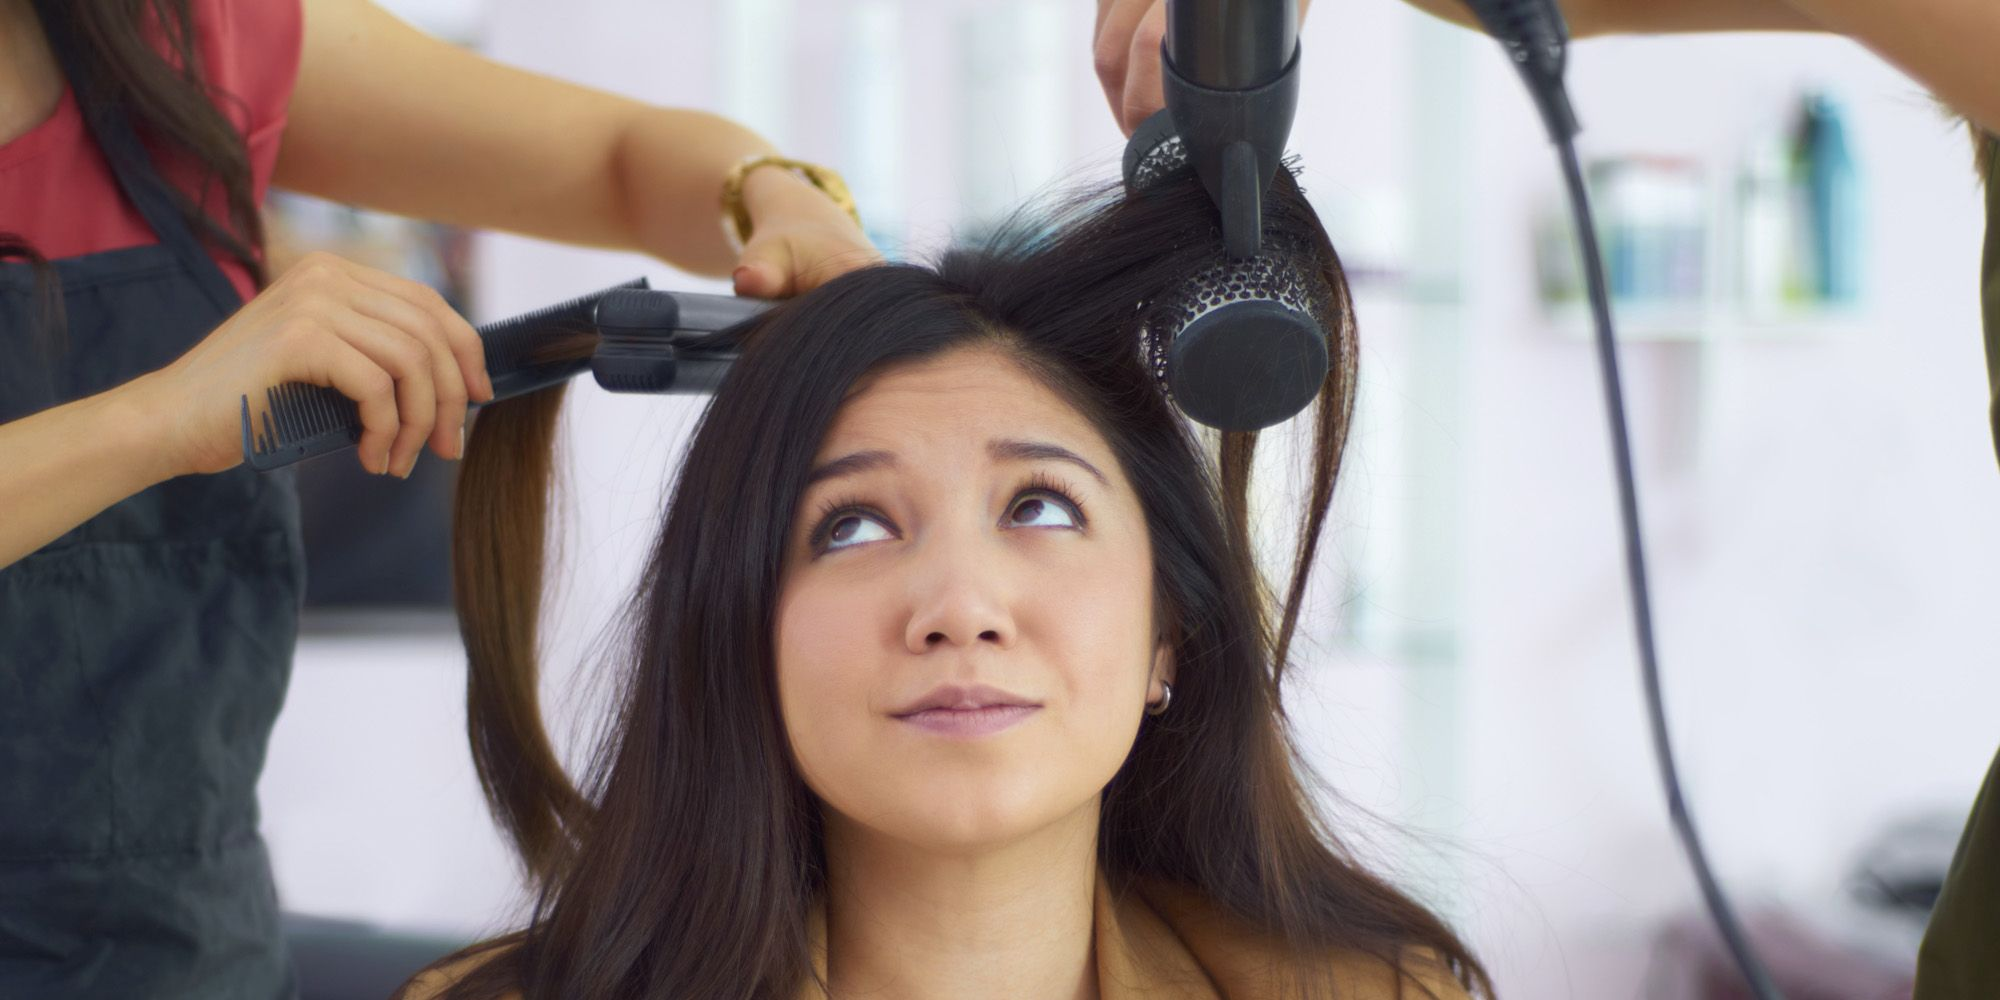 How To Tell A Stylist You Hate Your Haircut Bad Haircut Or Hair